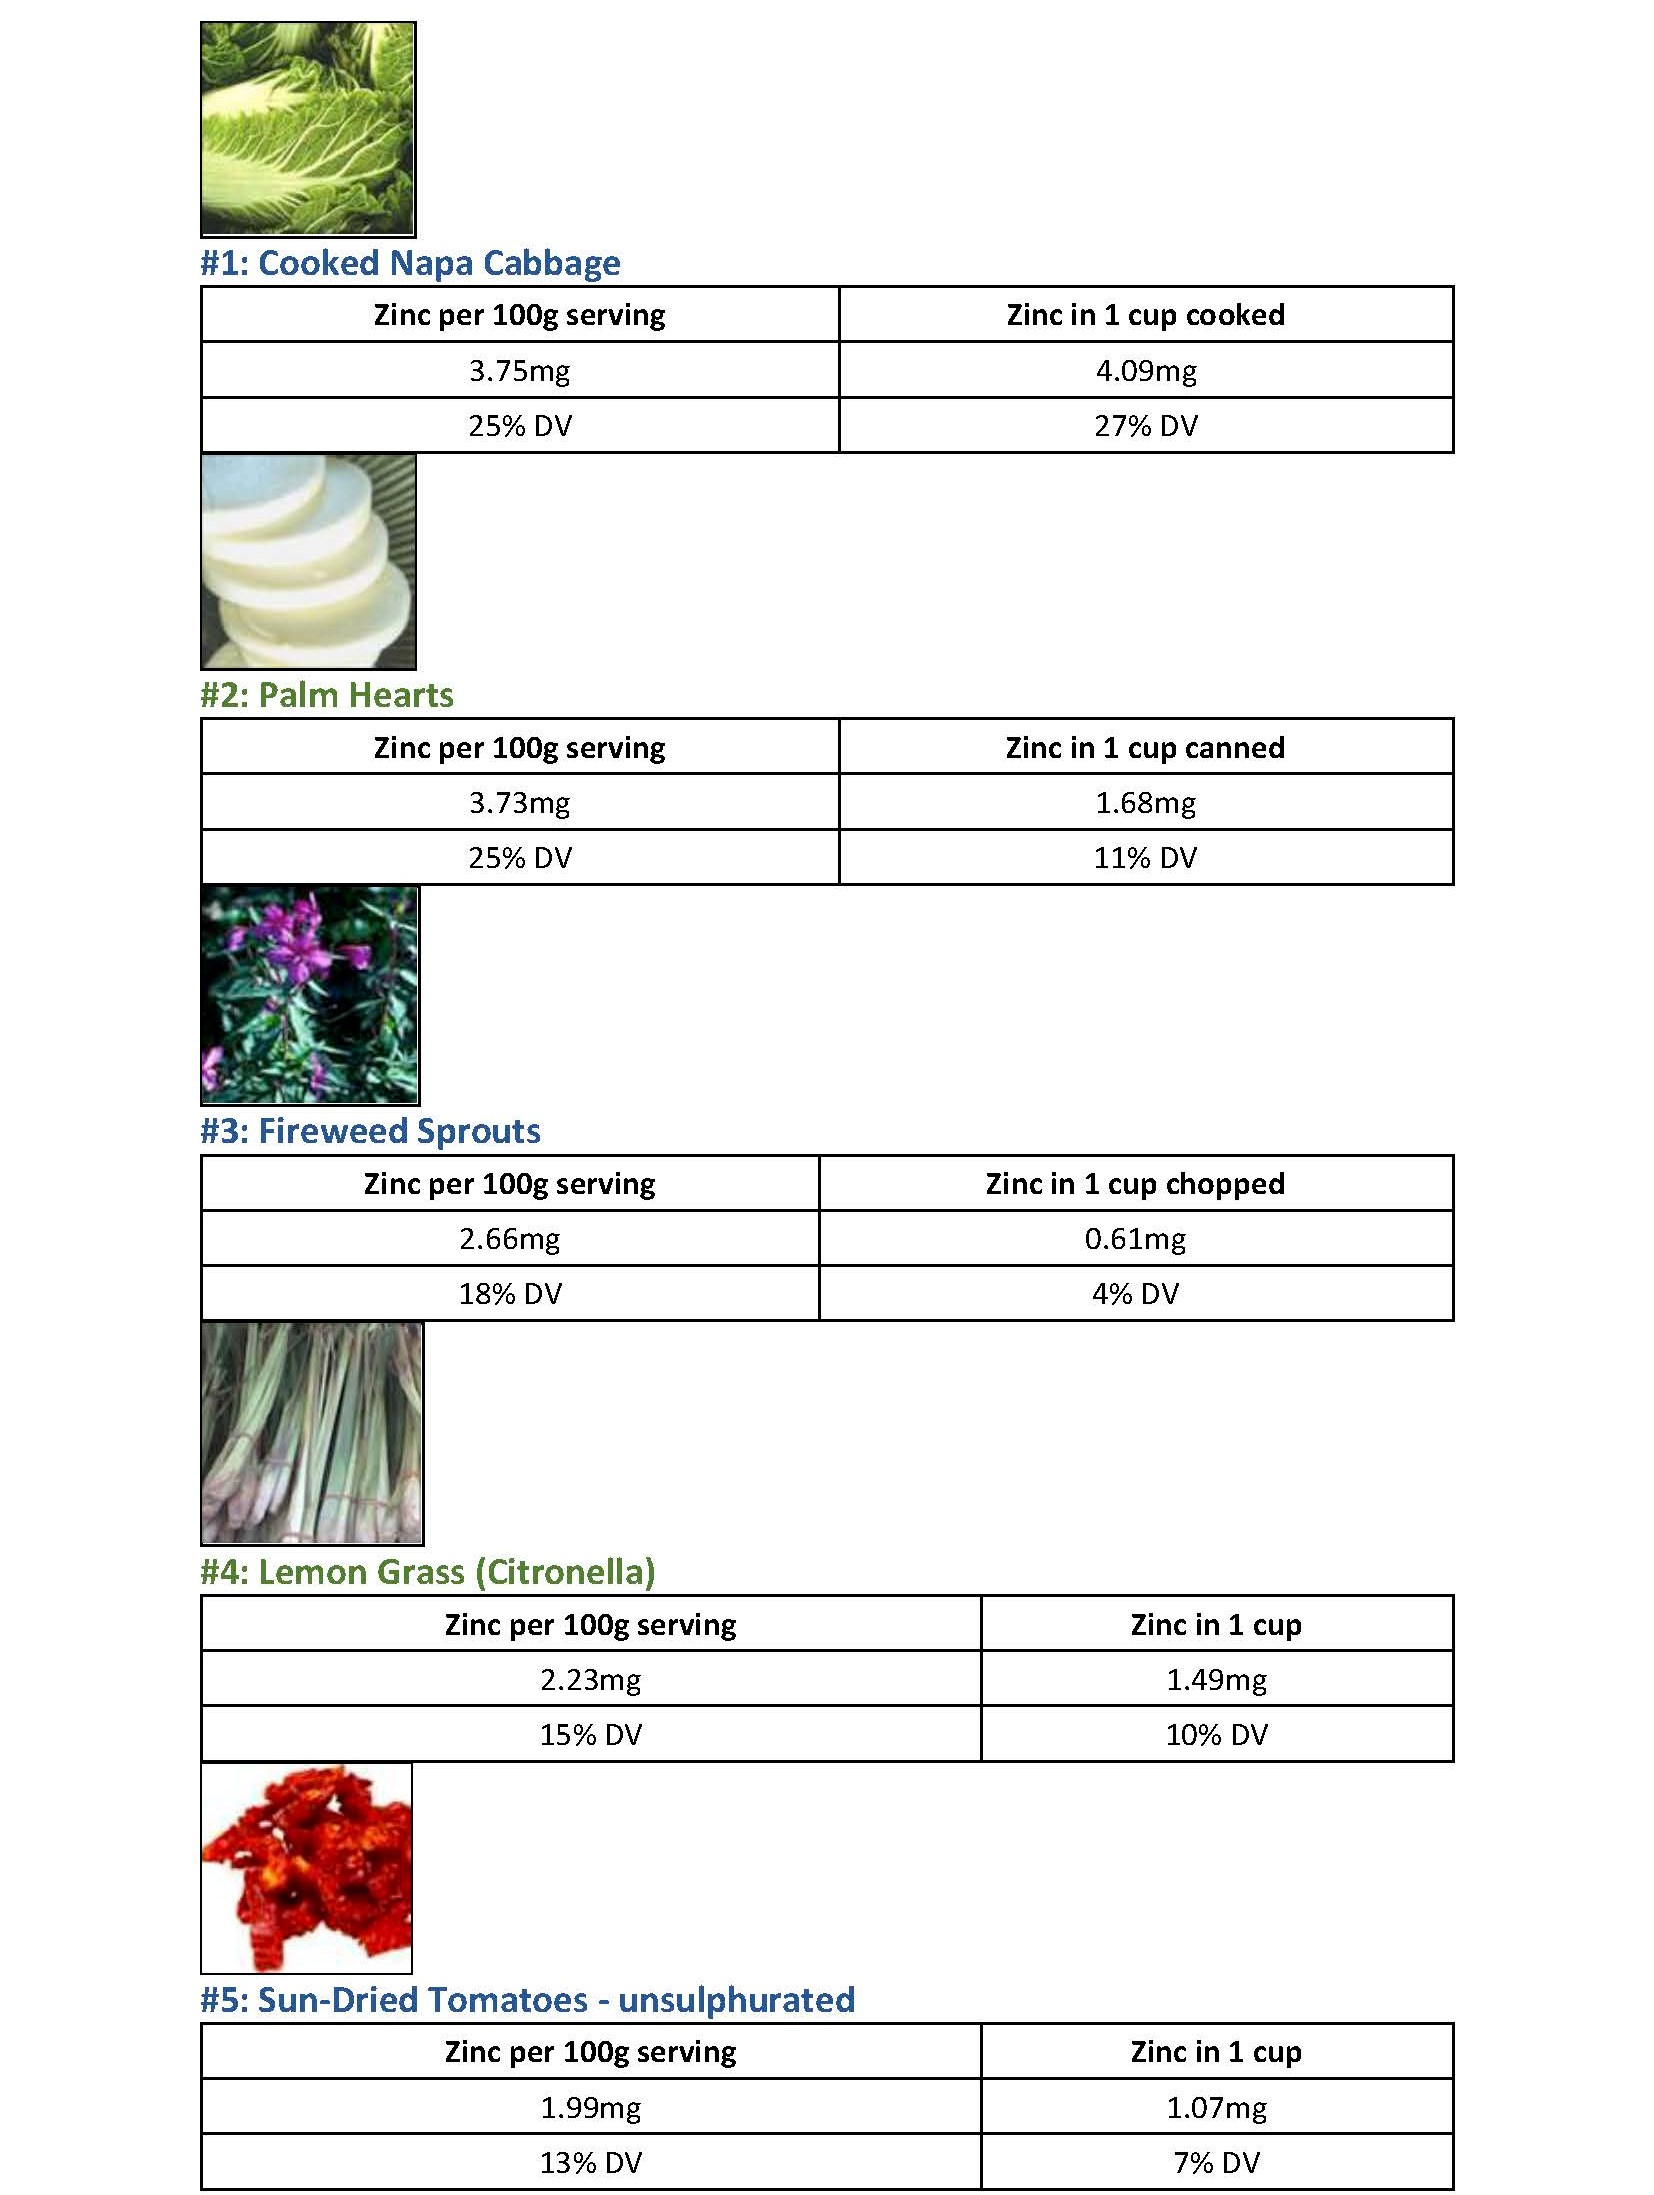 Natural Sources - Zinc in Vegetables - Table 1 page 1